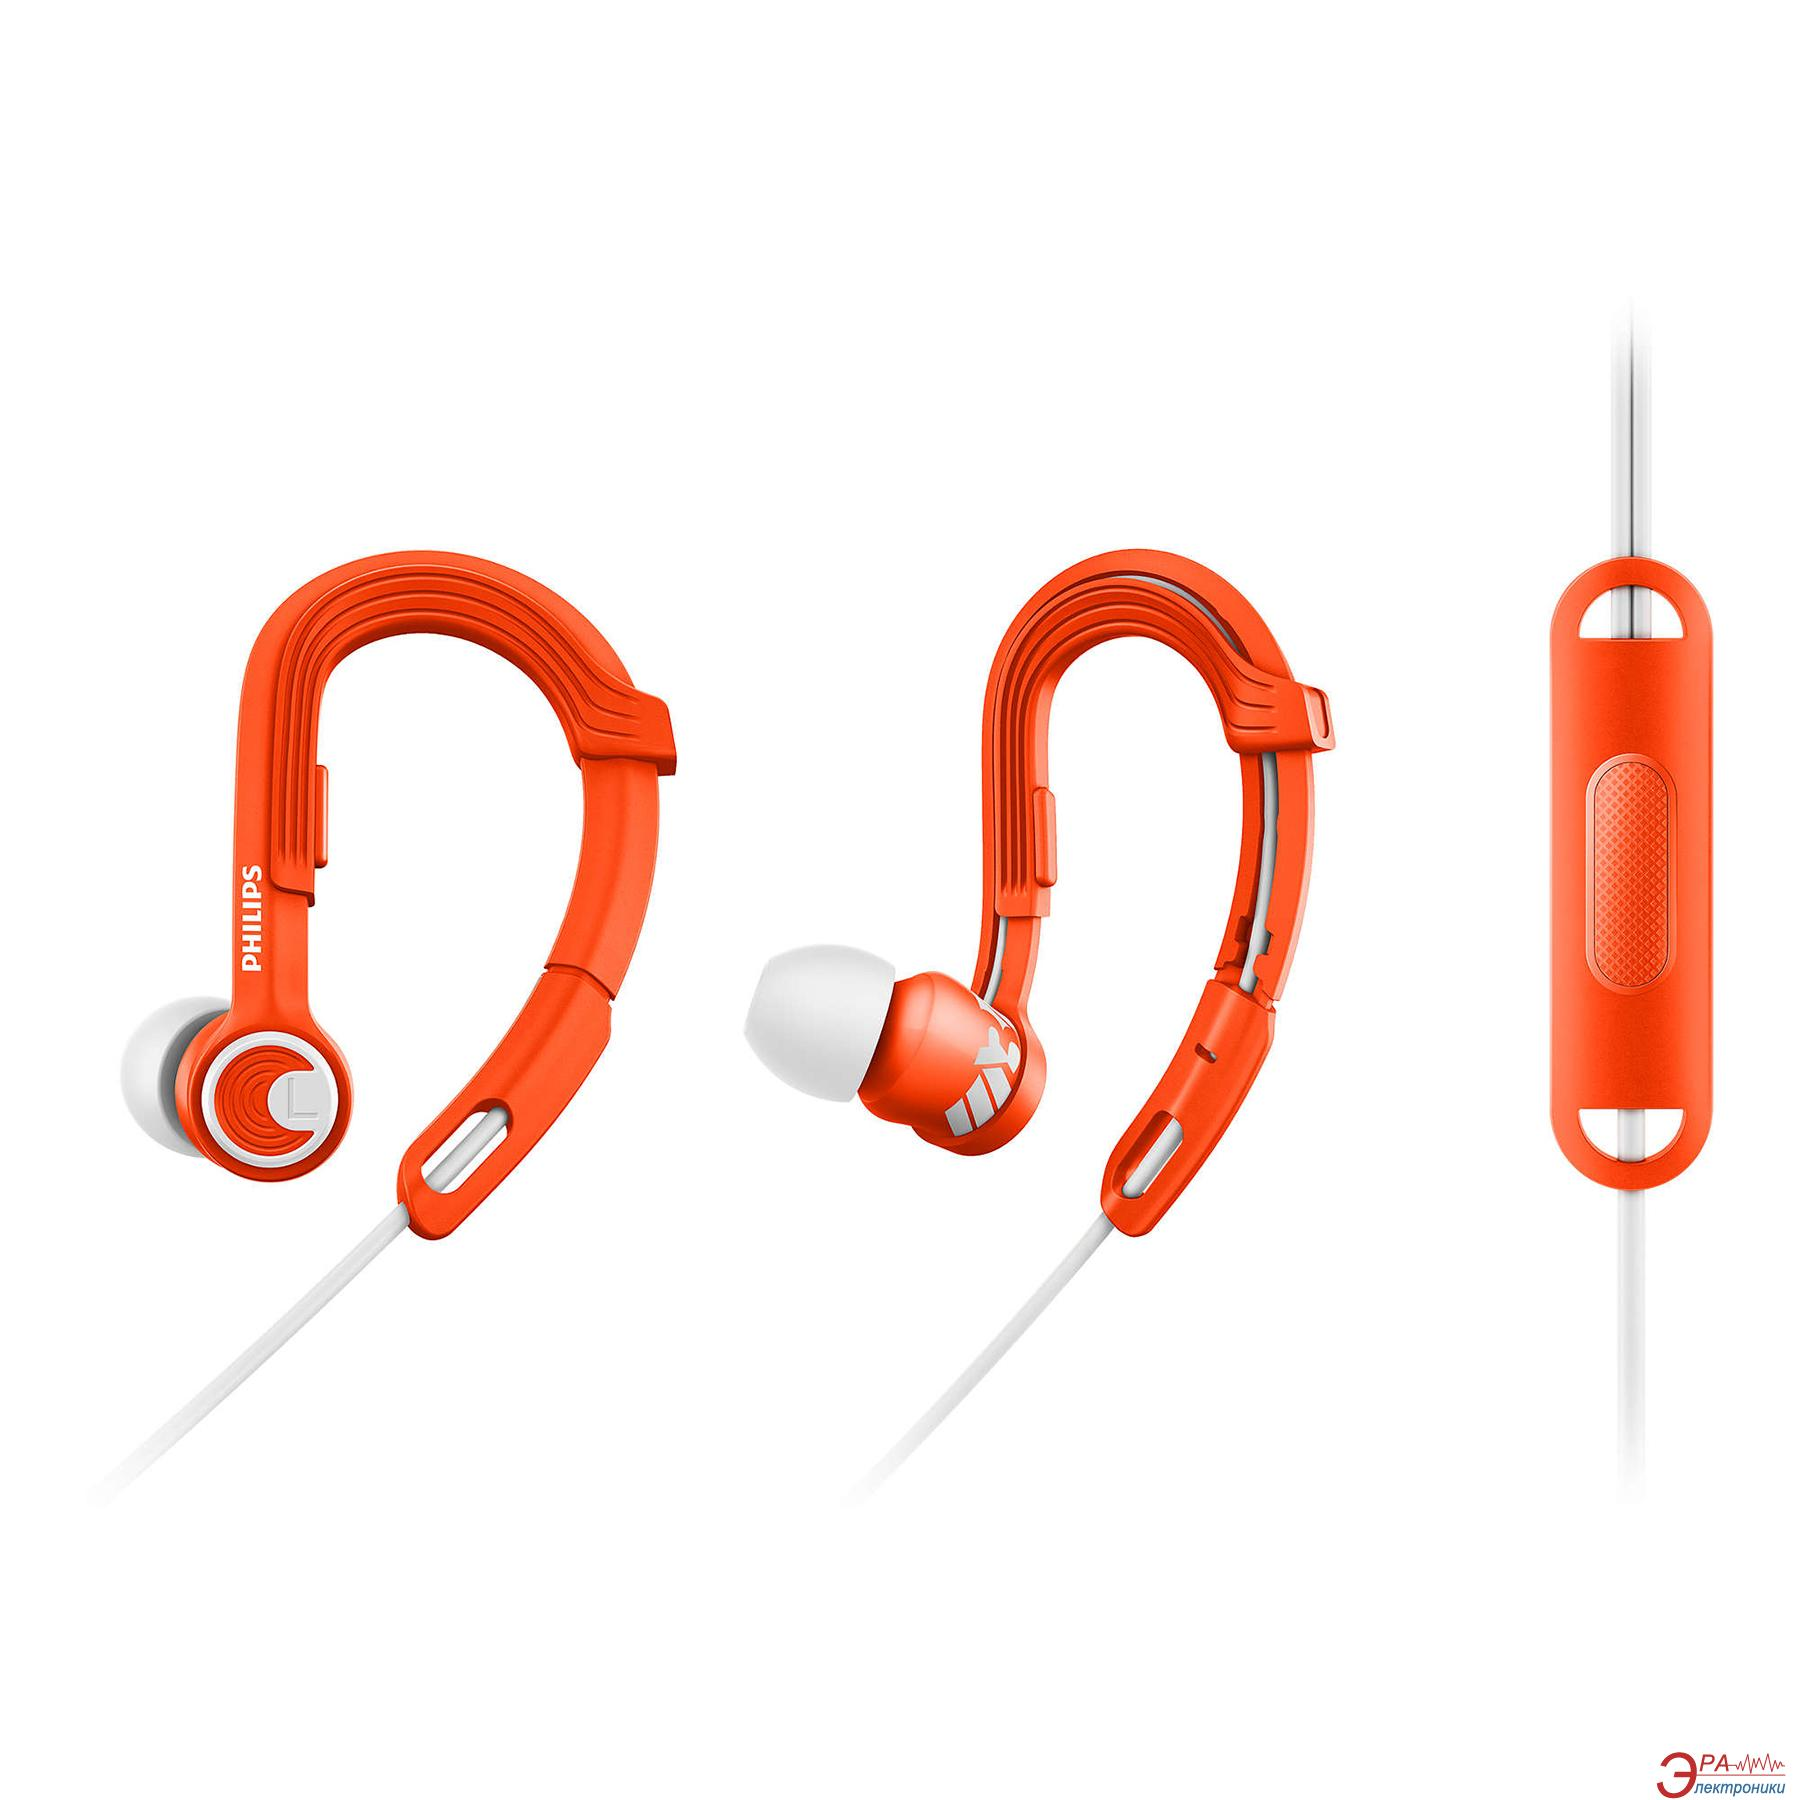 Гарнитура Philips ActionFit Sports  Orange/White (SHQ3305OR/00)